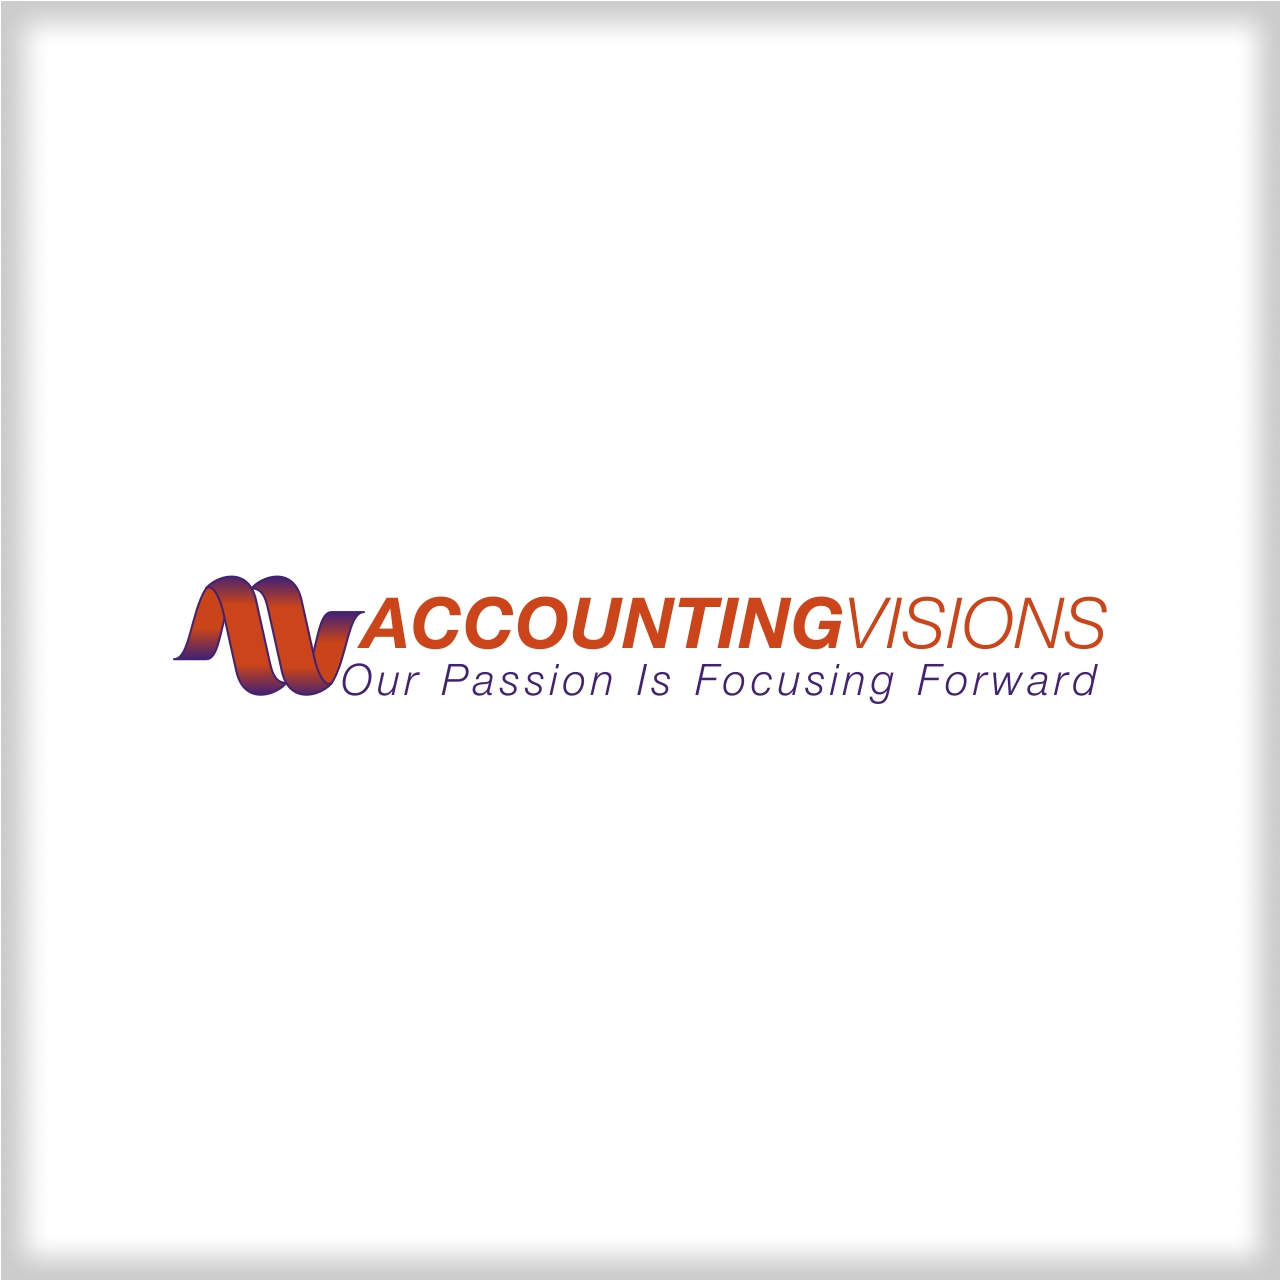 Logo Design by martinz - Entry No. 34 in the Logo Design Contest Accounting Visions.